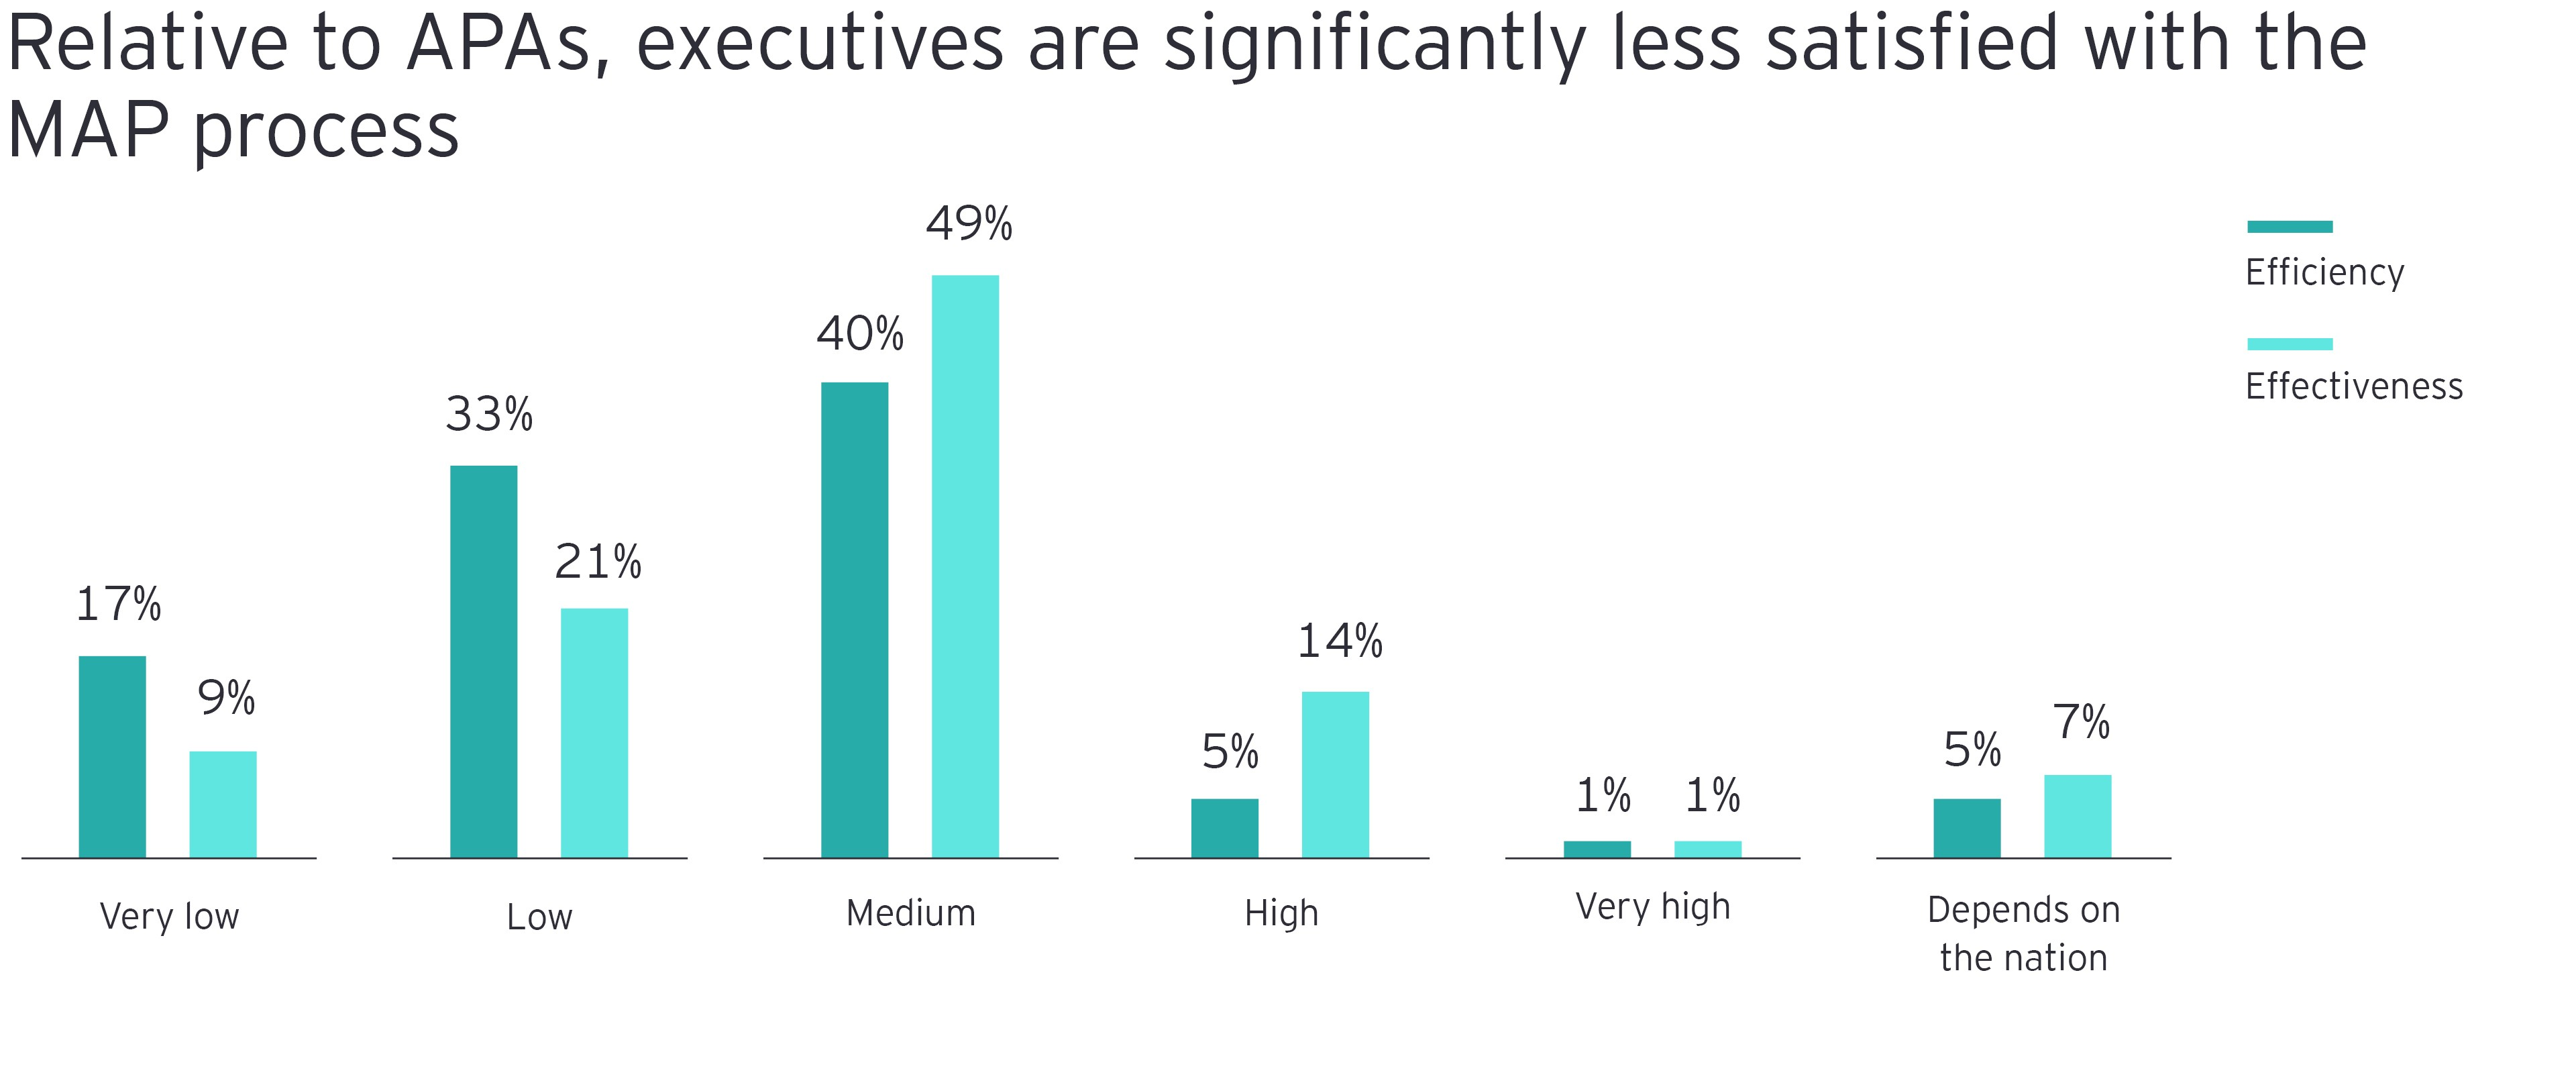 Relative to APAs, executives are significantly less satisfied with the MAP process